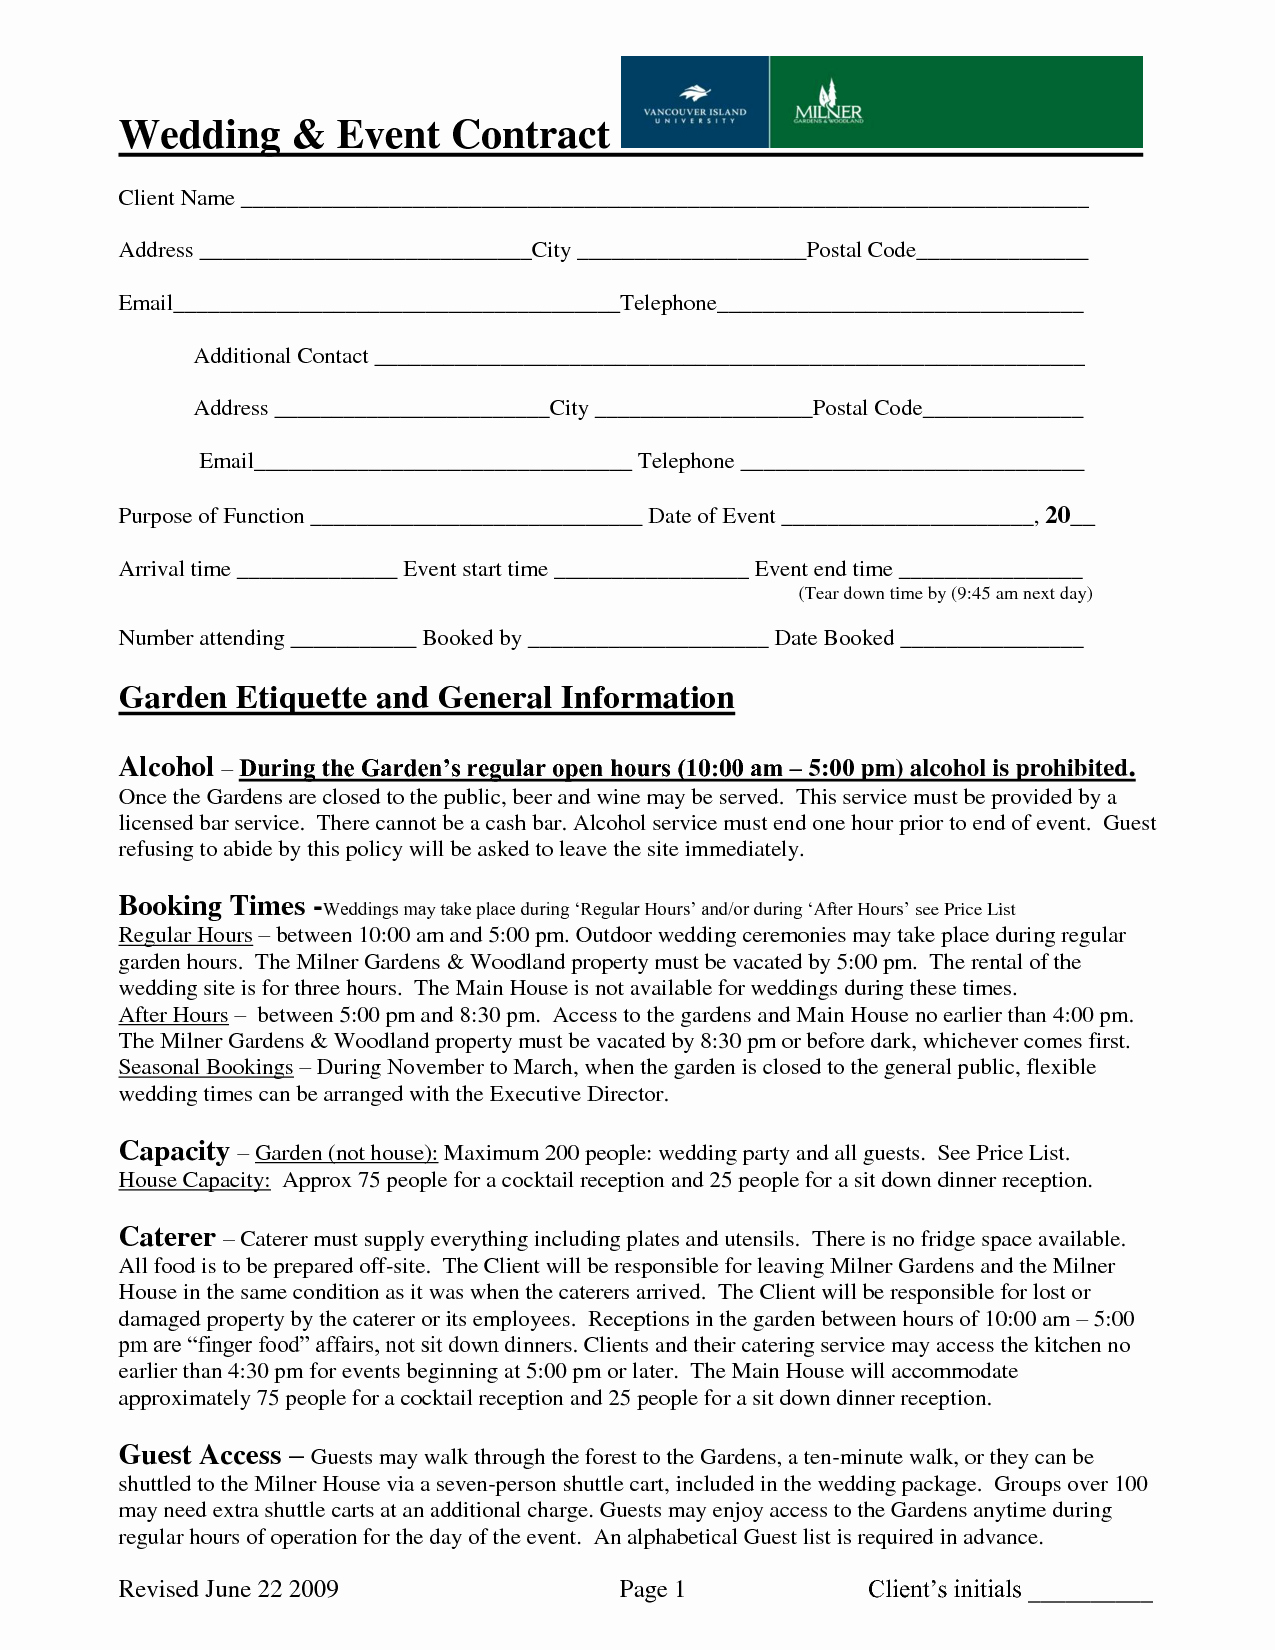 Wedding Planner Contract Template Elegant Wedding event Contract Sample Contract